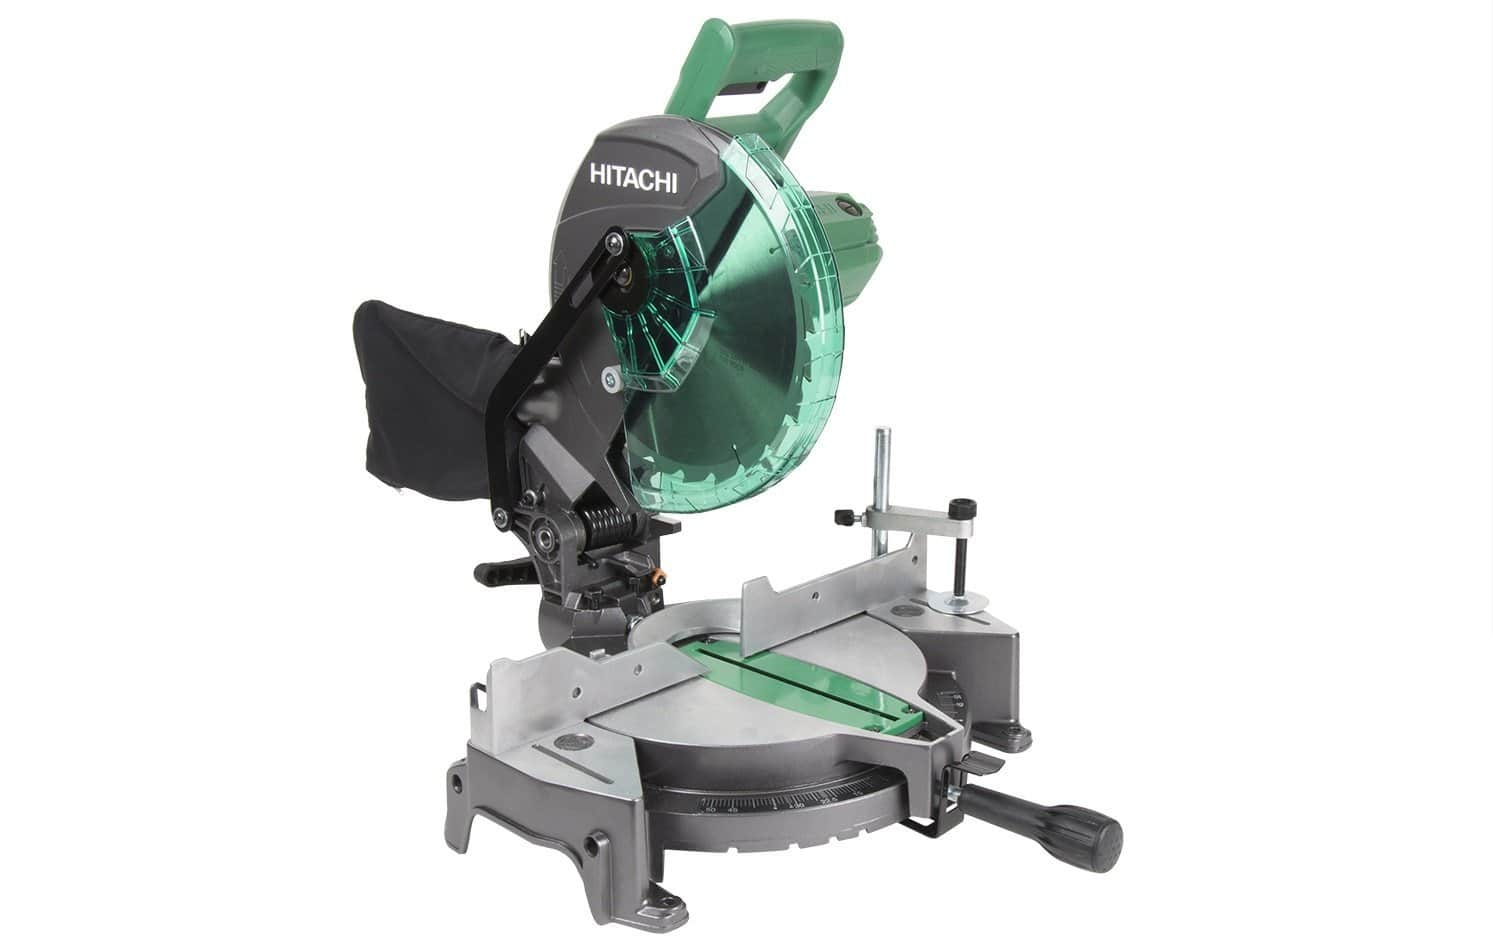 Hitachi 10-in 15-Amp Single Bevel Compound Miter Saw, $80 w/coupon, FS or Store Pickup